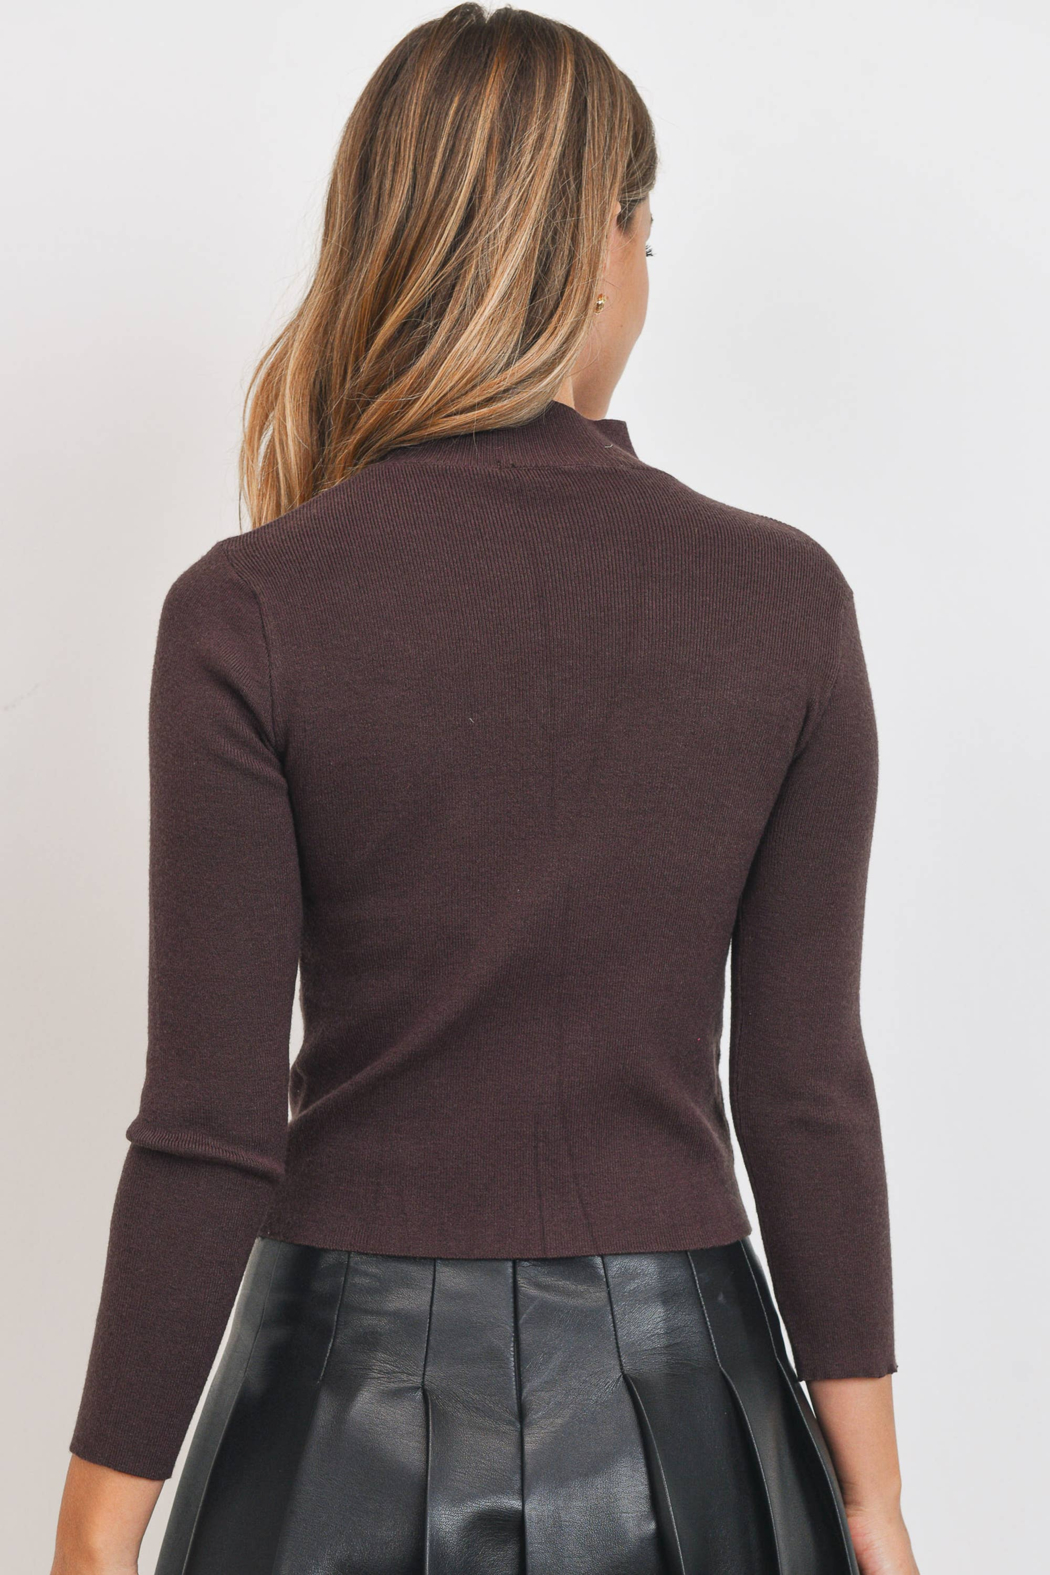 Sweet Rain Brown Cut Out Neck Sweater - Front Full Image